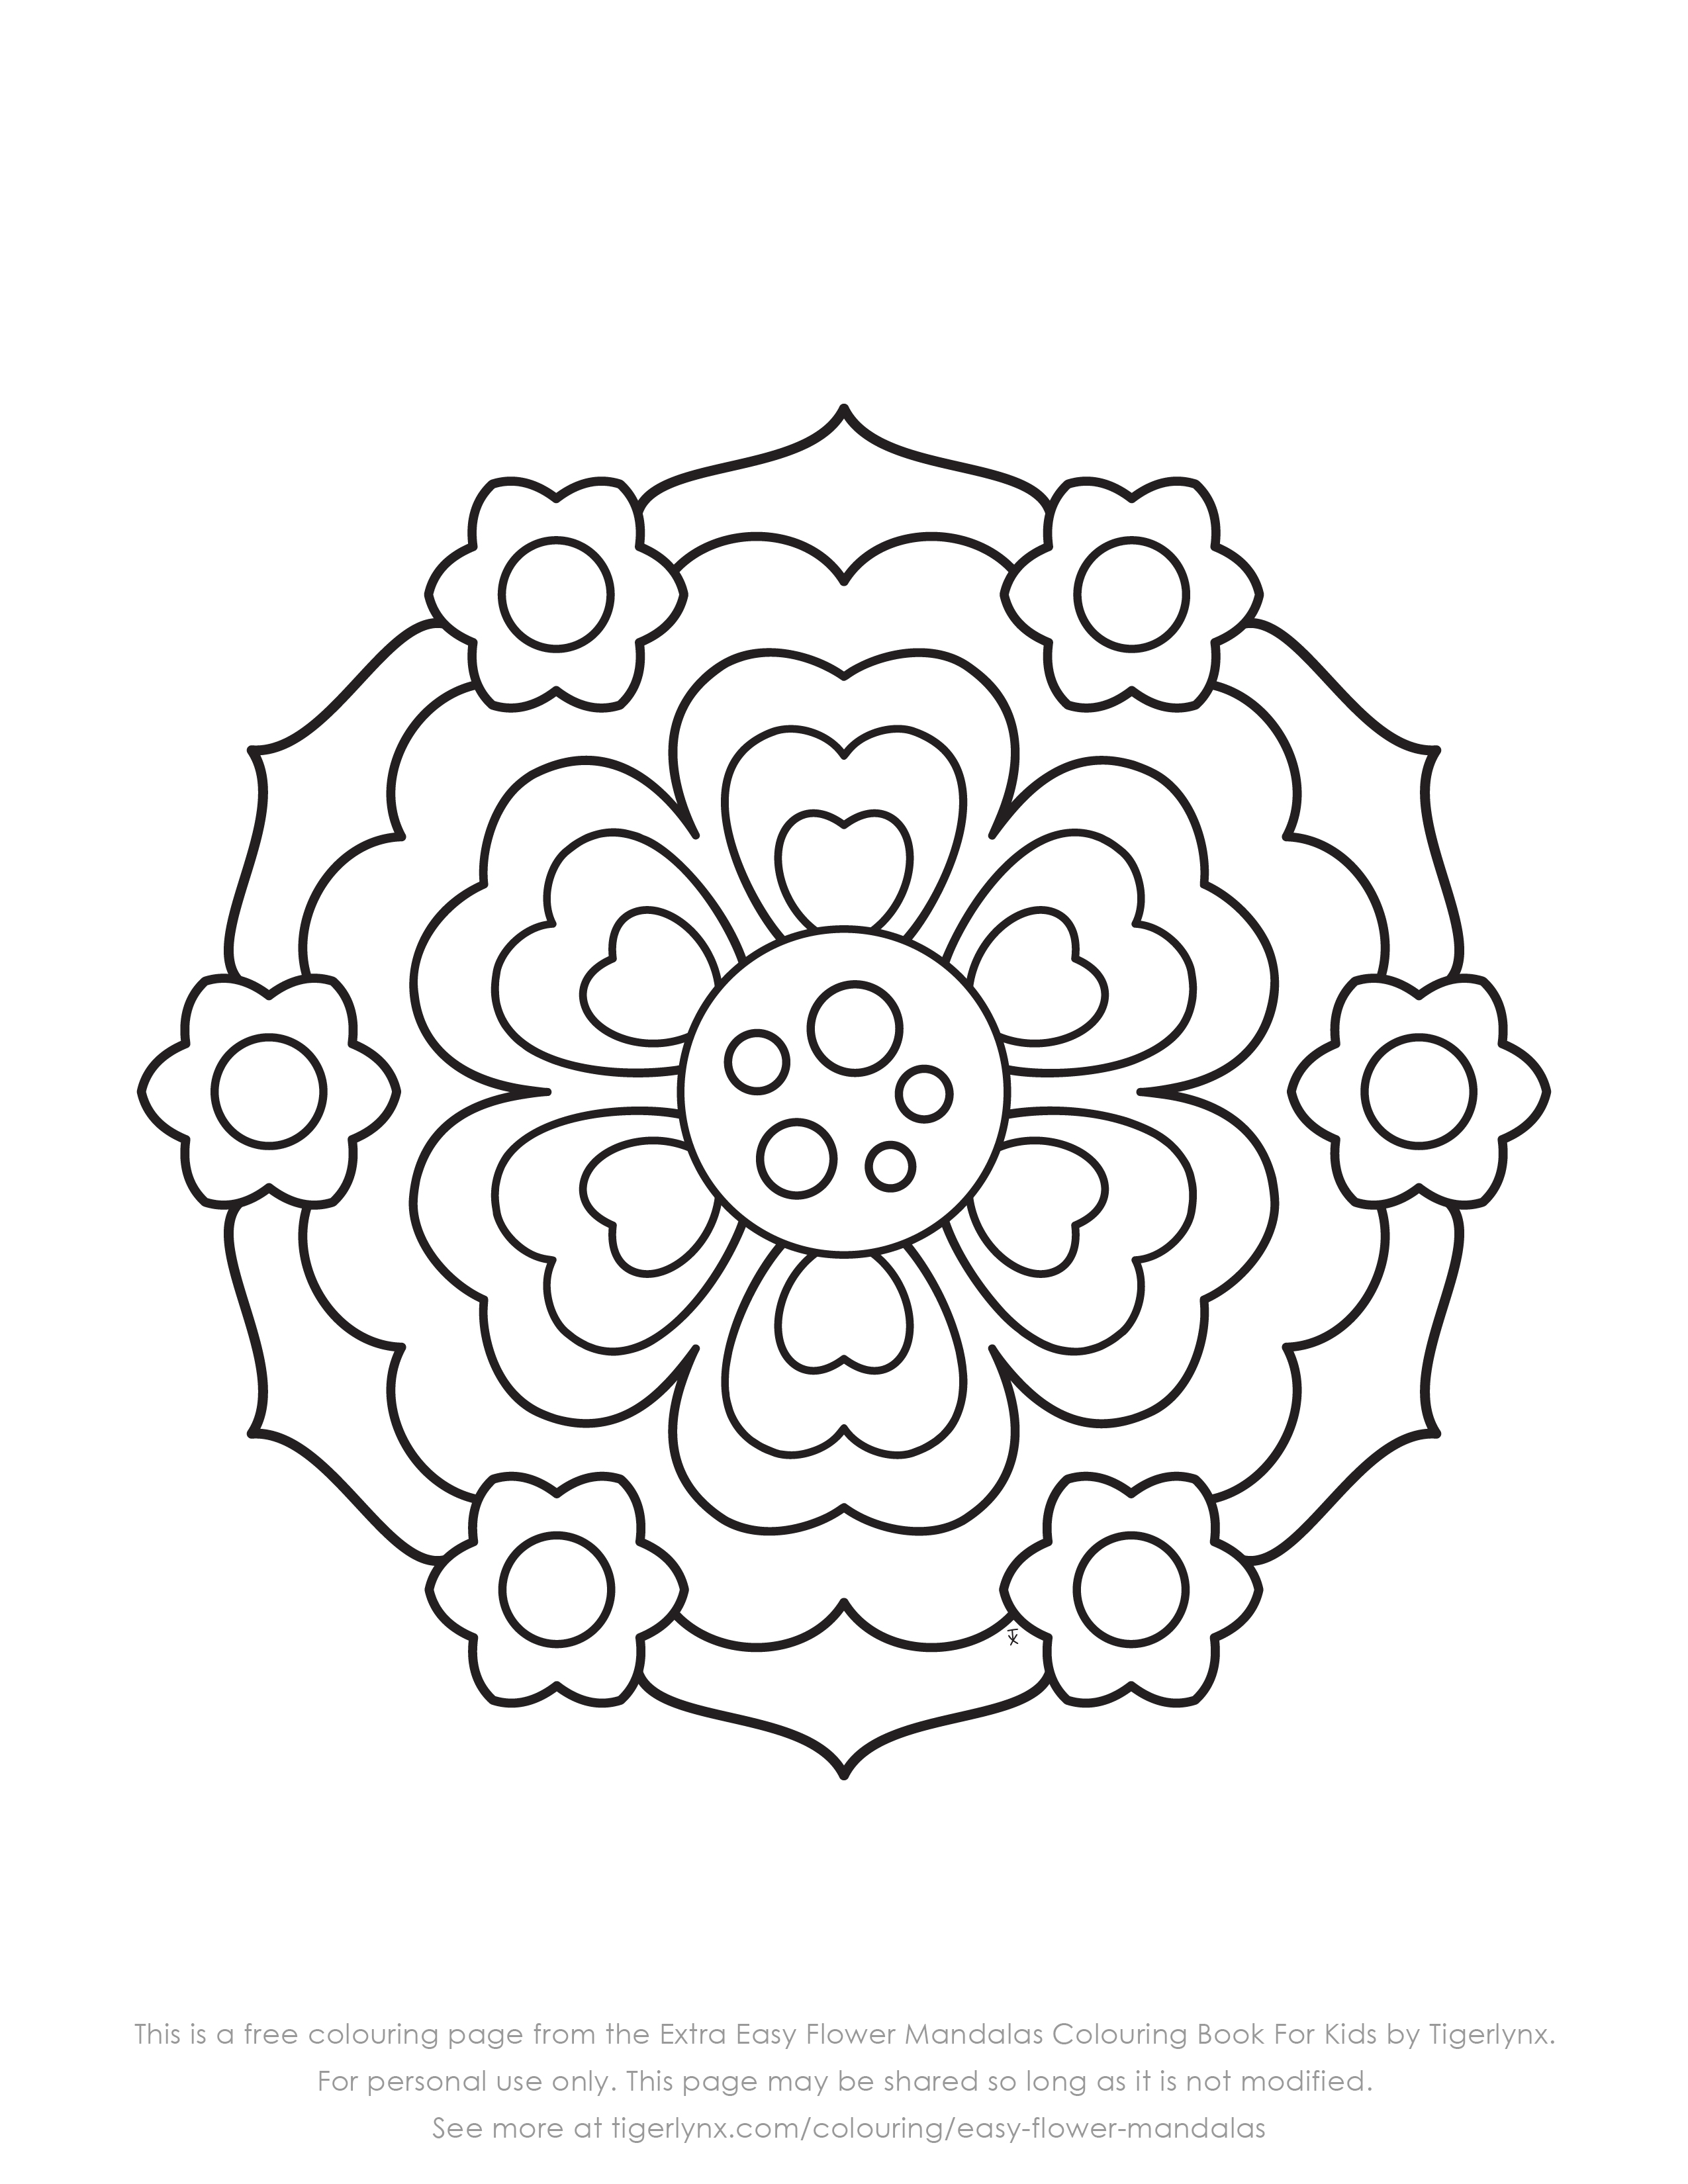 Extra Easy Flower Mandalas Sample